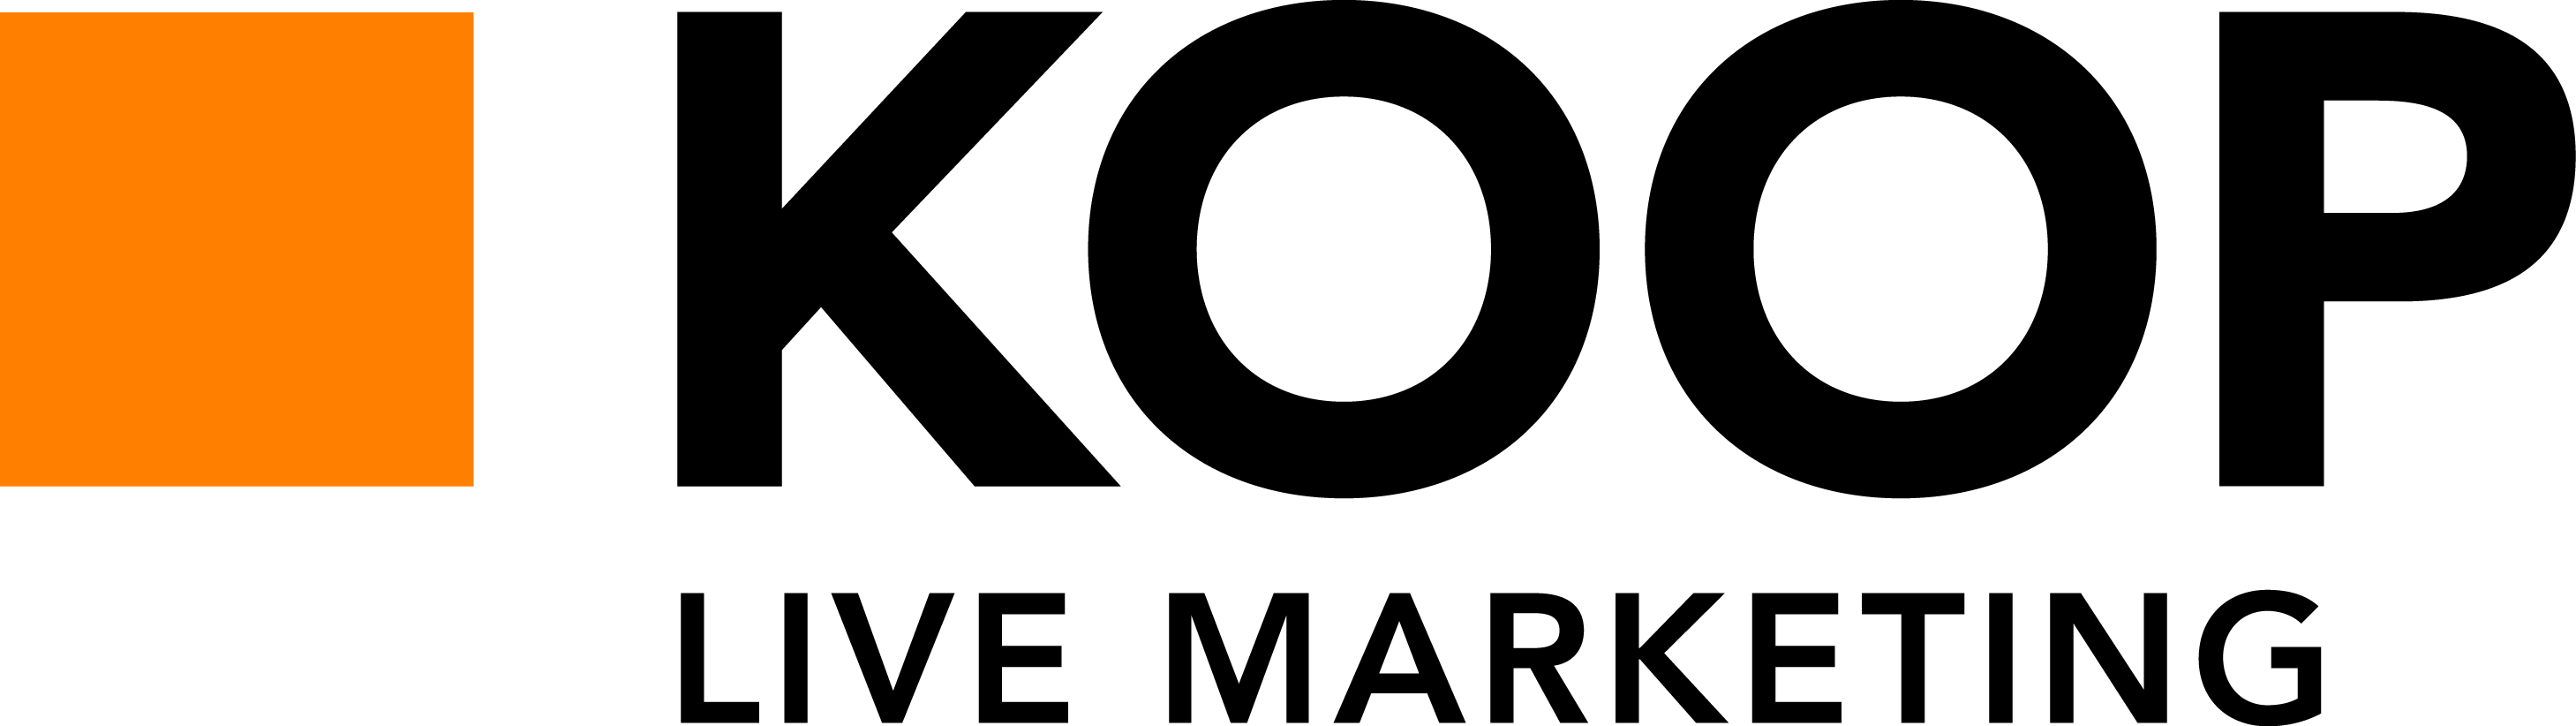 KOOP Live Marketing GmbH & Co KG